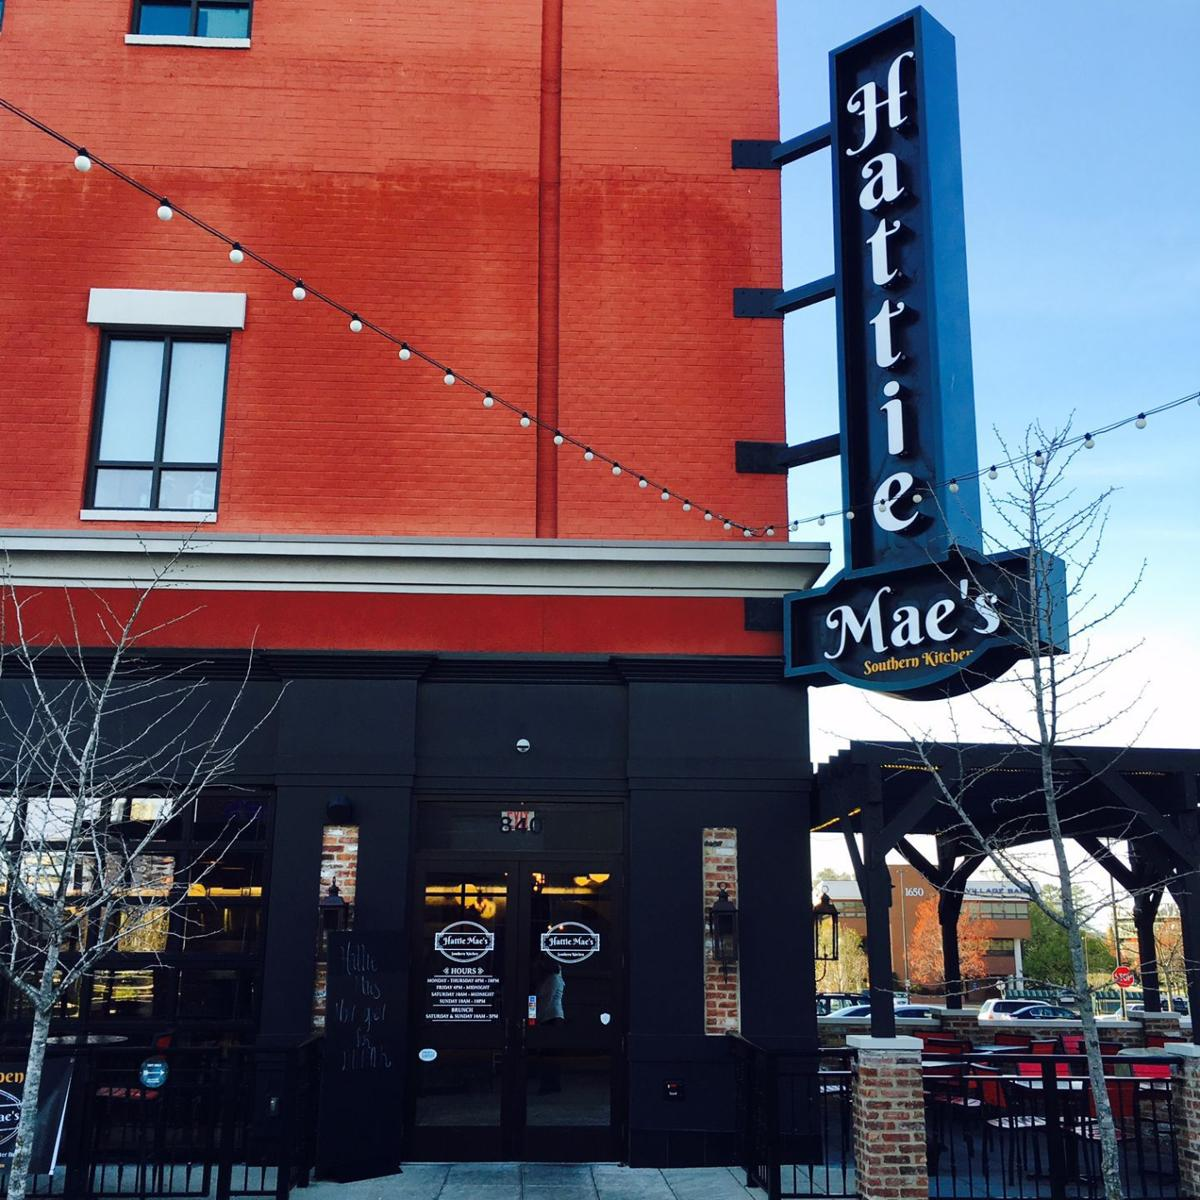 Southern Kitchen Hattie Maes Southern Kitchen Is Now Open In Former American Tap